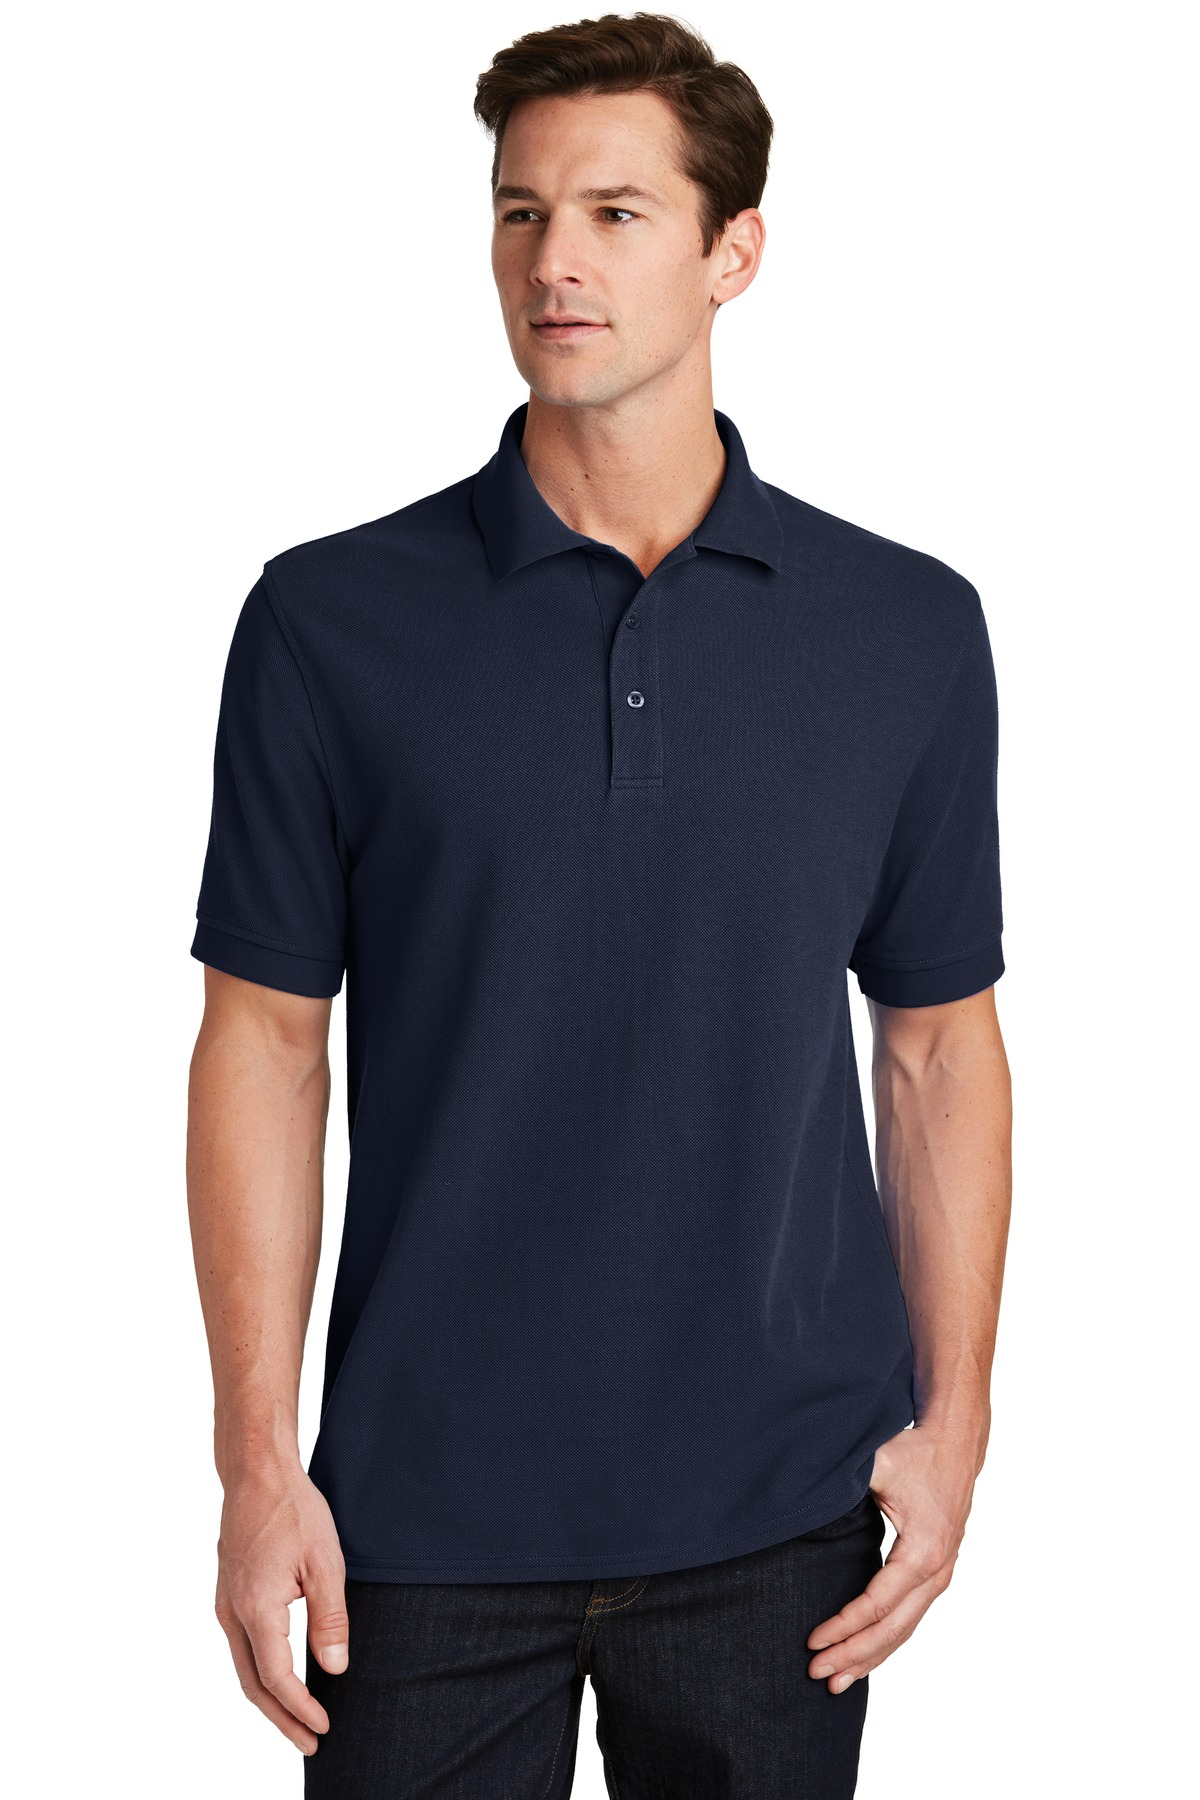 Port & Company ®  Combed Ring Spun Pique Polo. KP1500 - Deep Navy